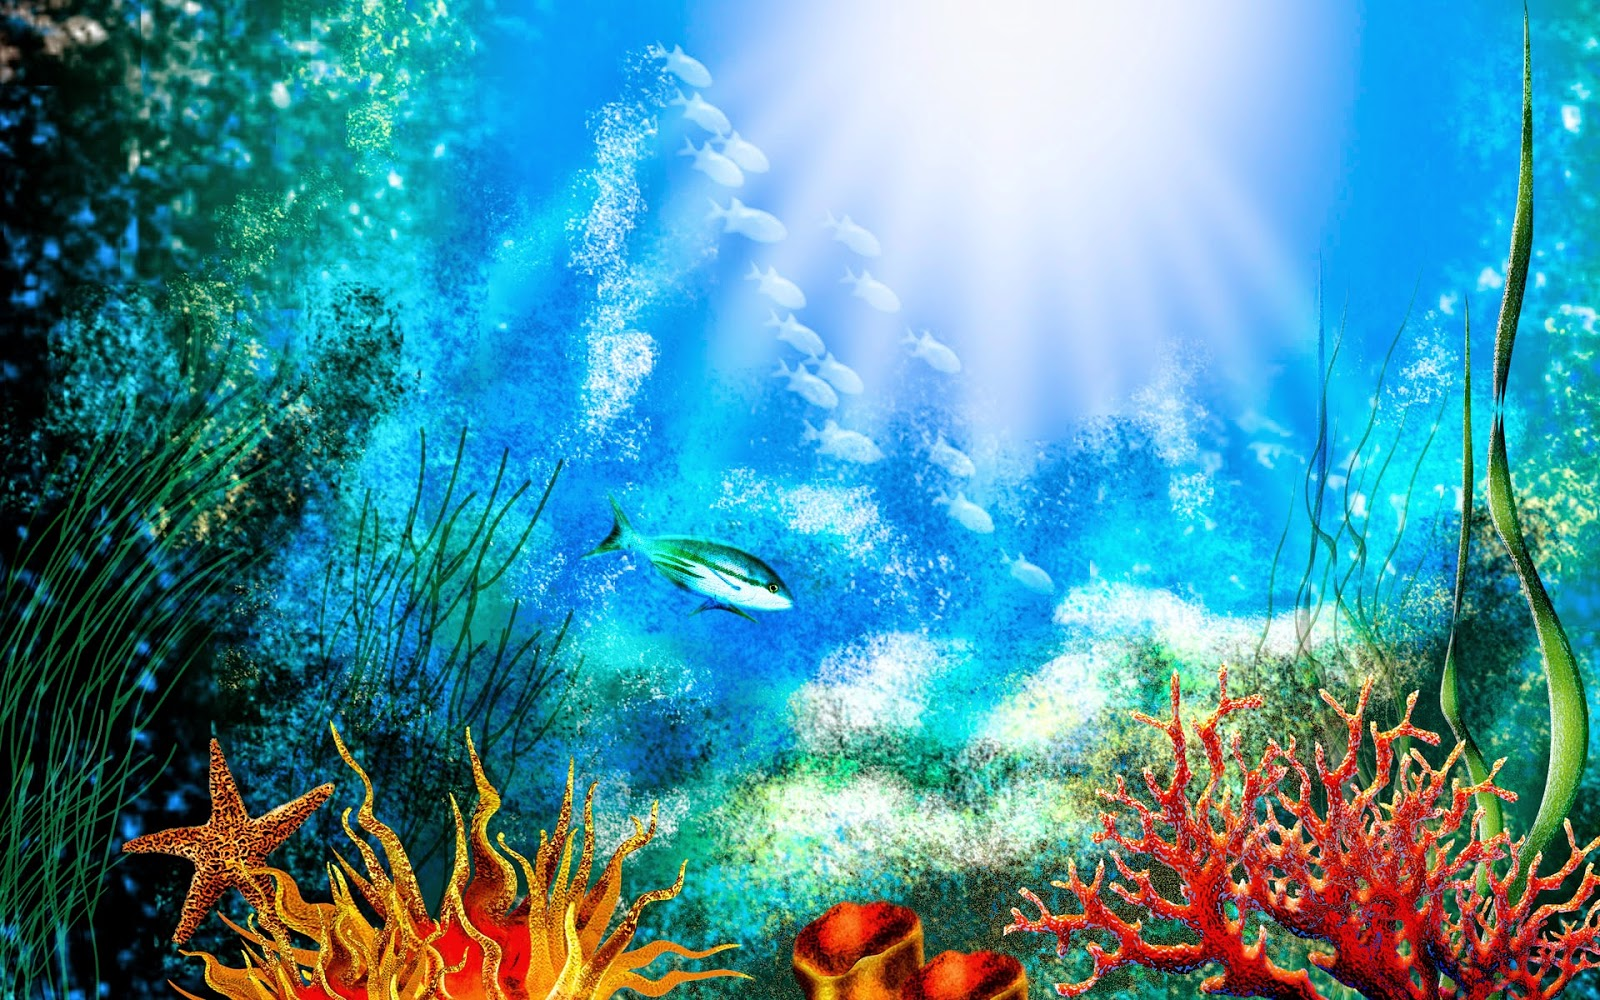 Coral reef pictures hd